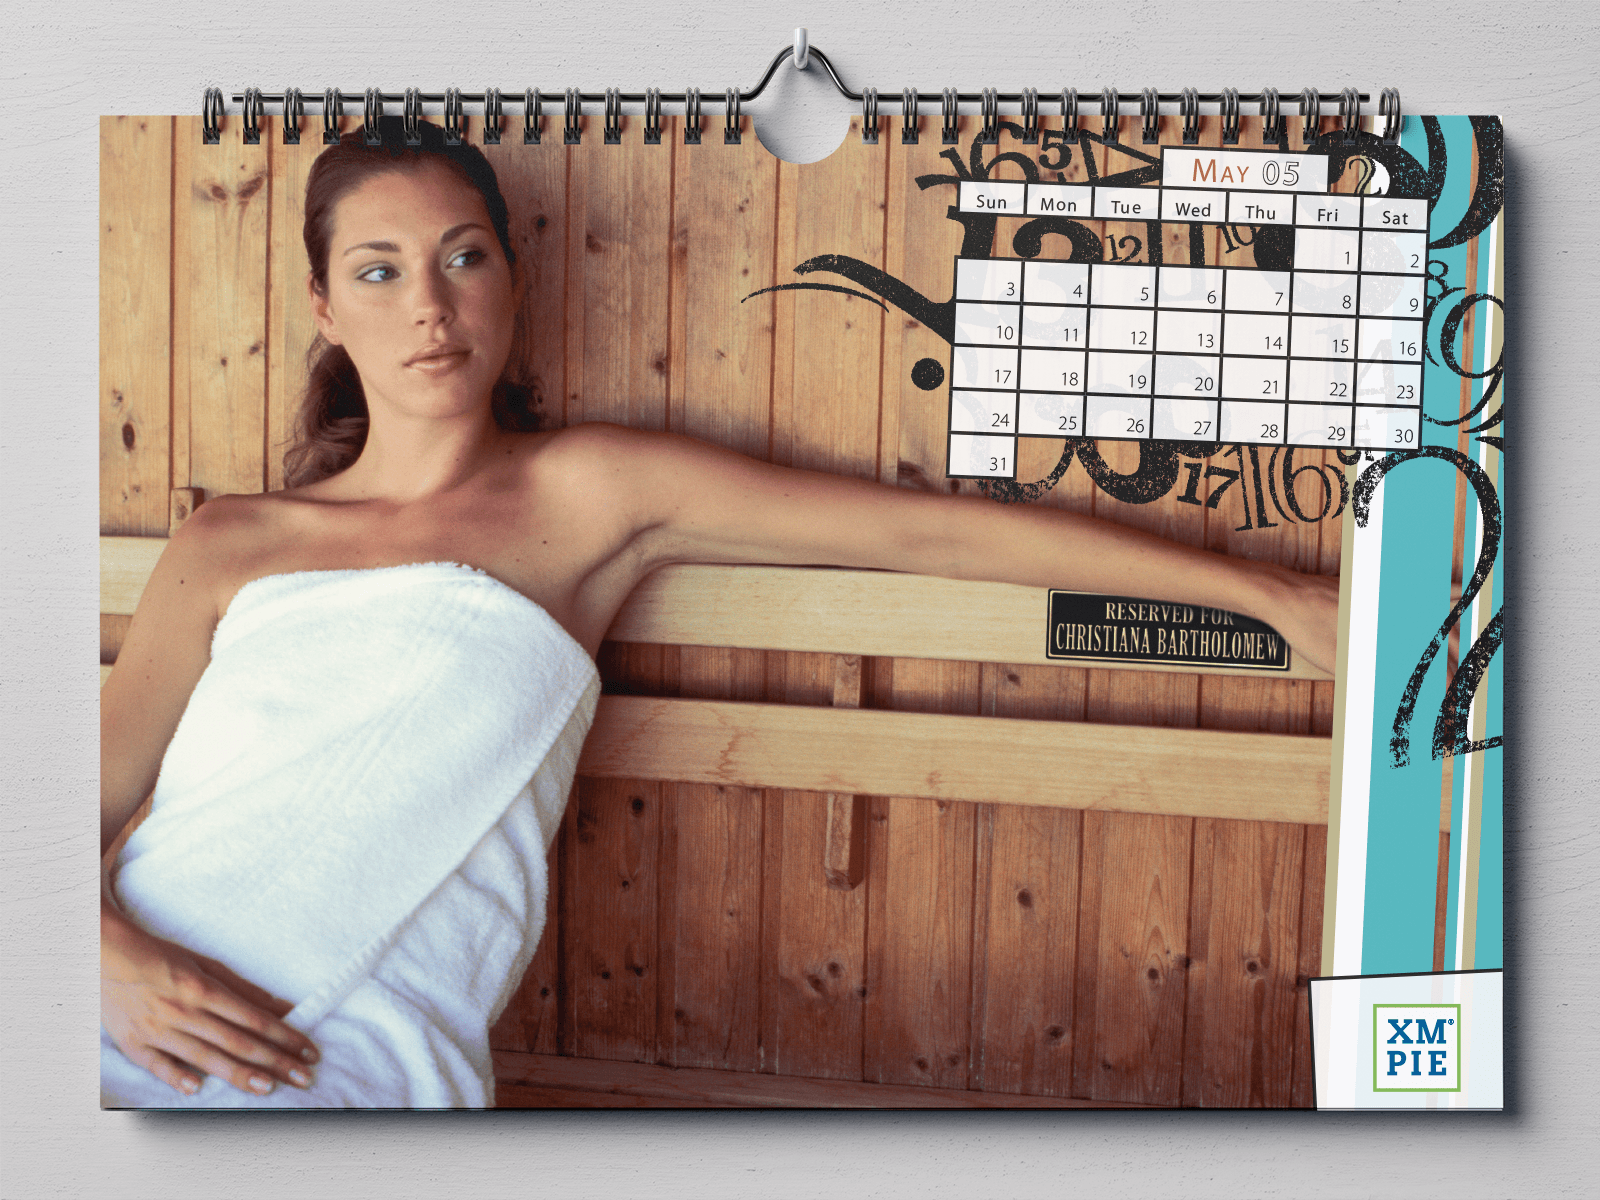 http://bigeyes.co.il/wp-content/uploads/2019/07/college-calendar-6.png